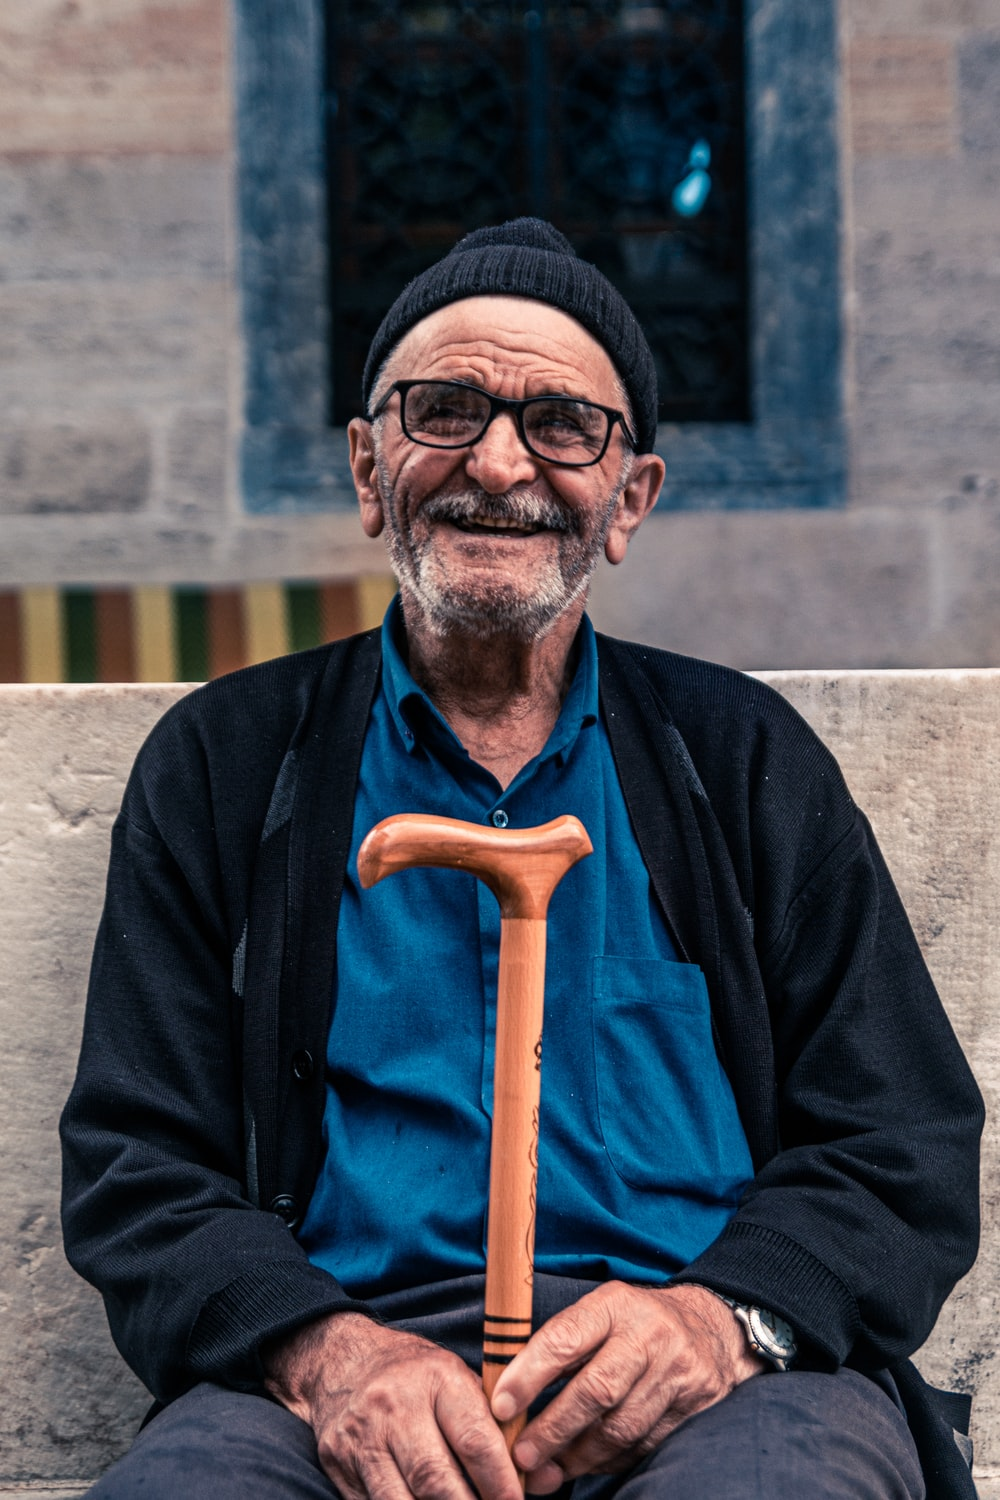 smiling man seated on bench holding cane